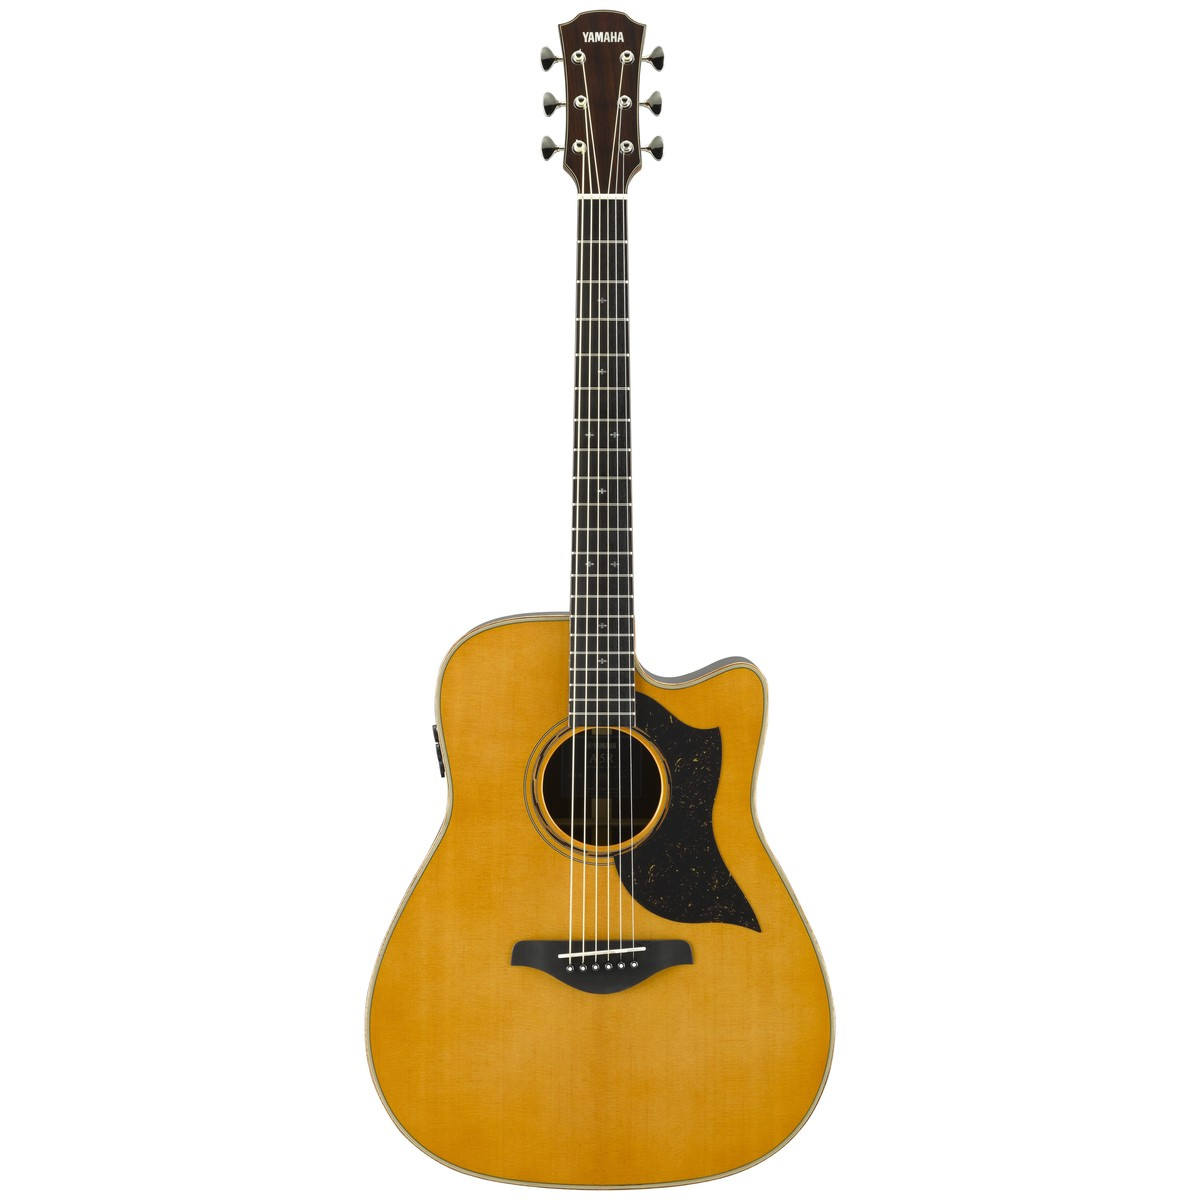 Yamaha a5r rosewood electro acoustic guitar vintage for Yamaha a5r are